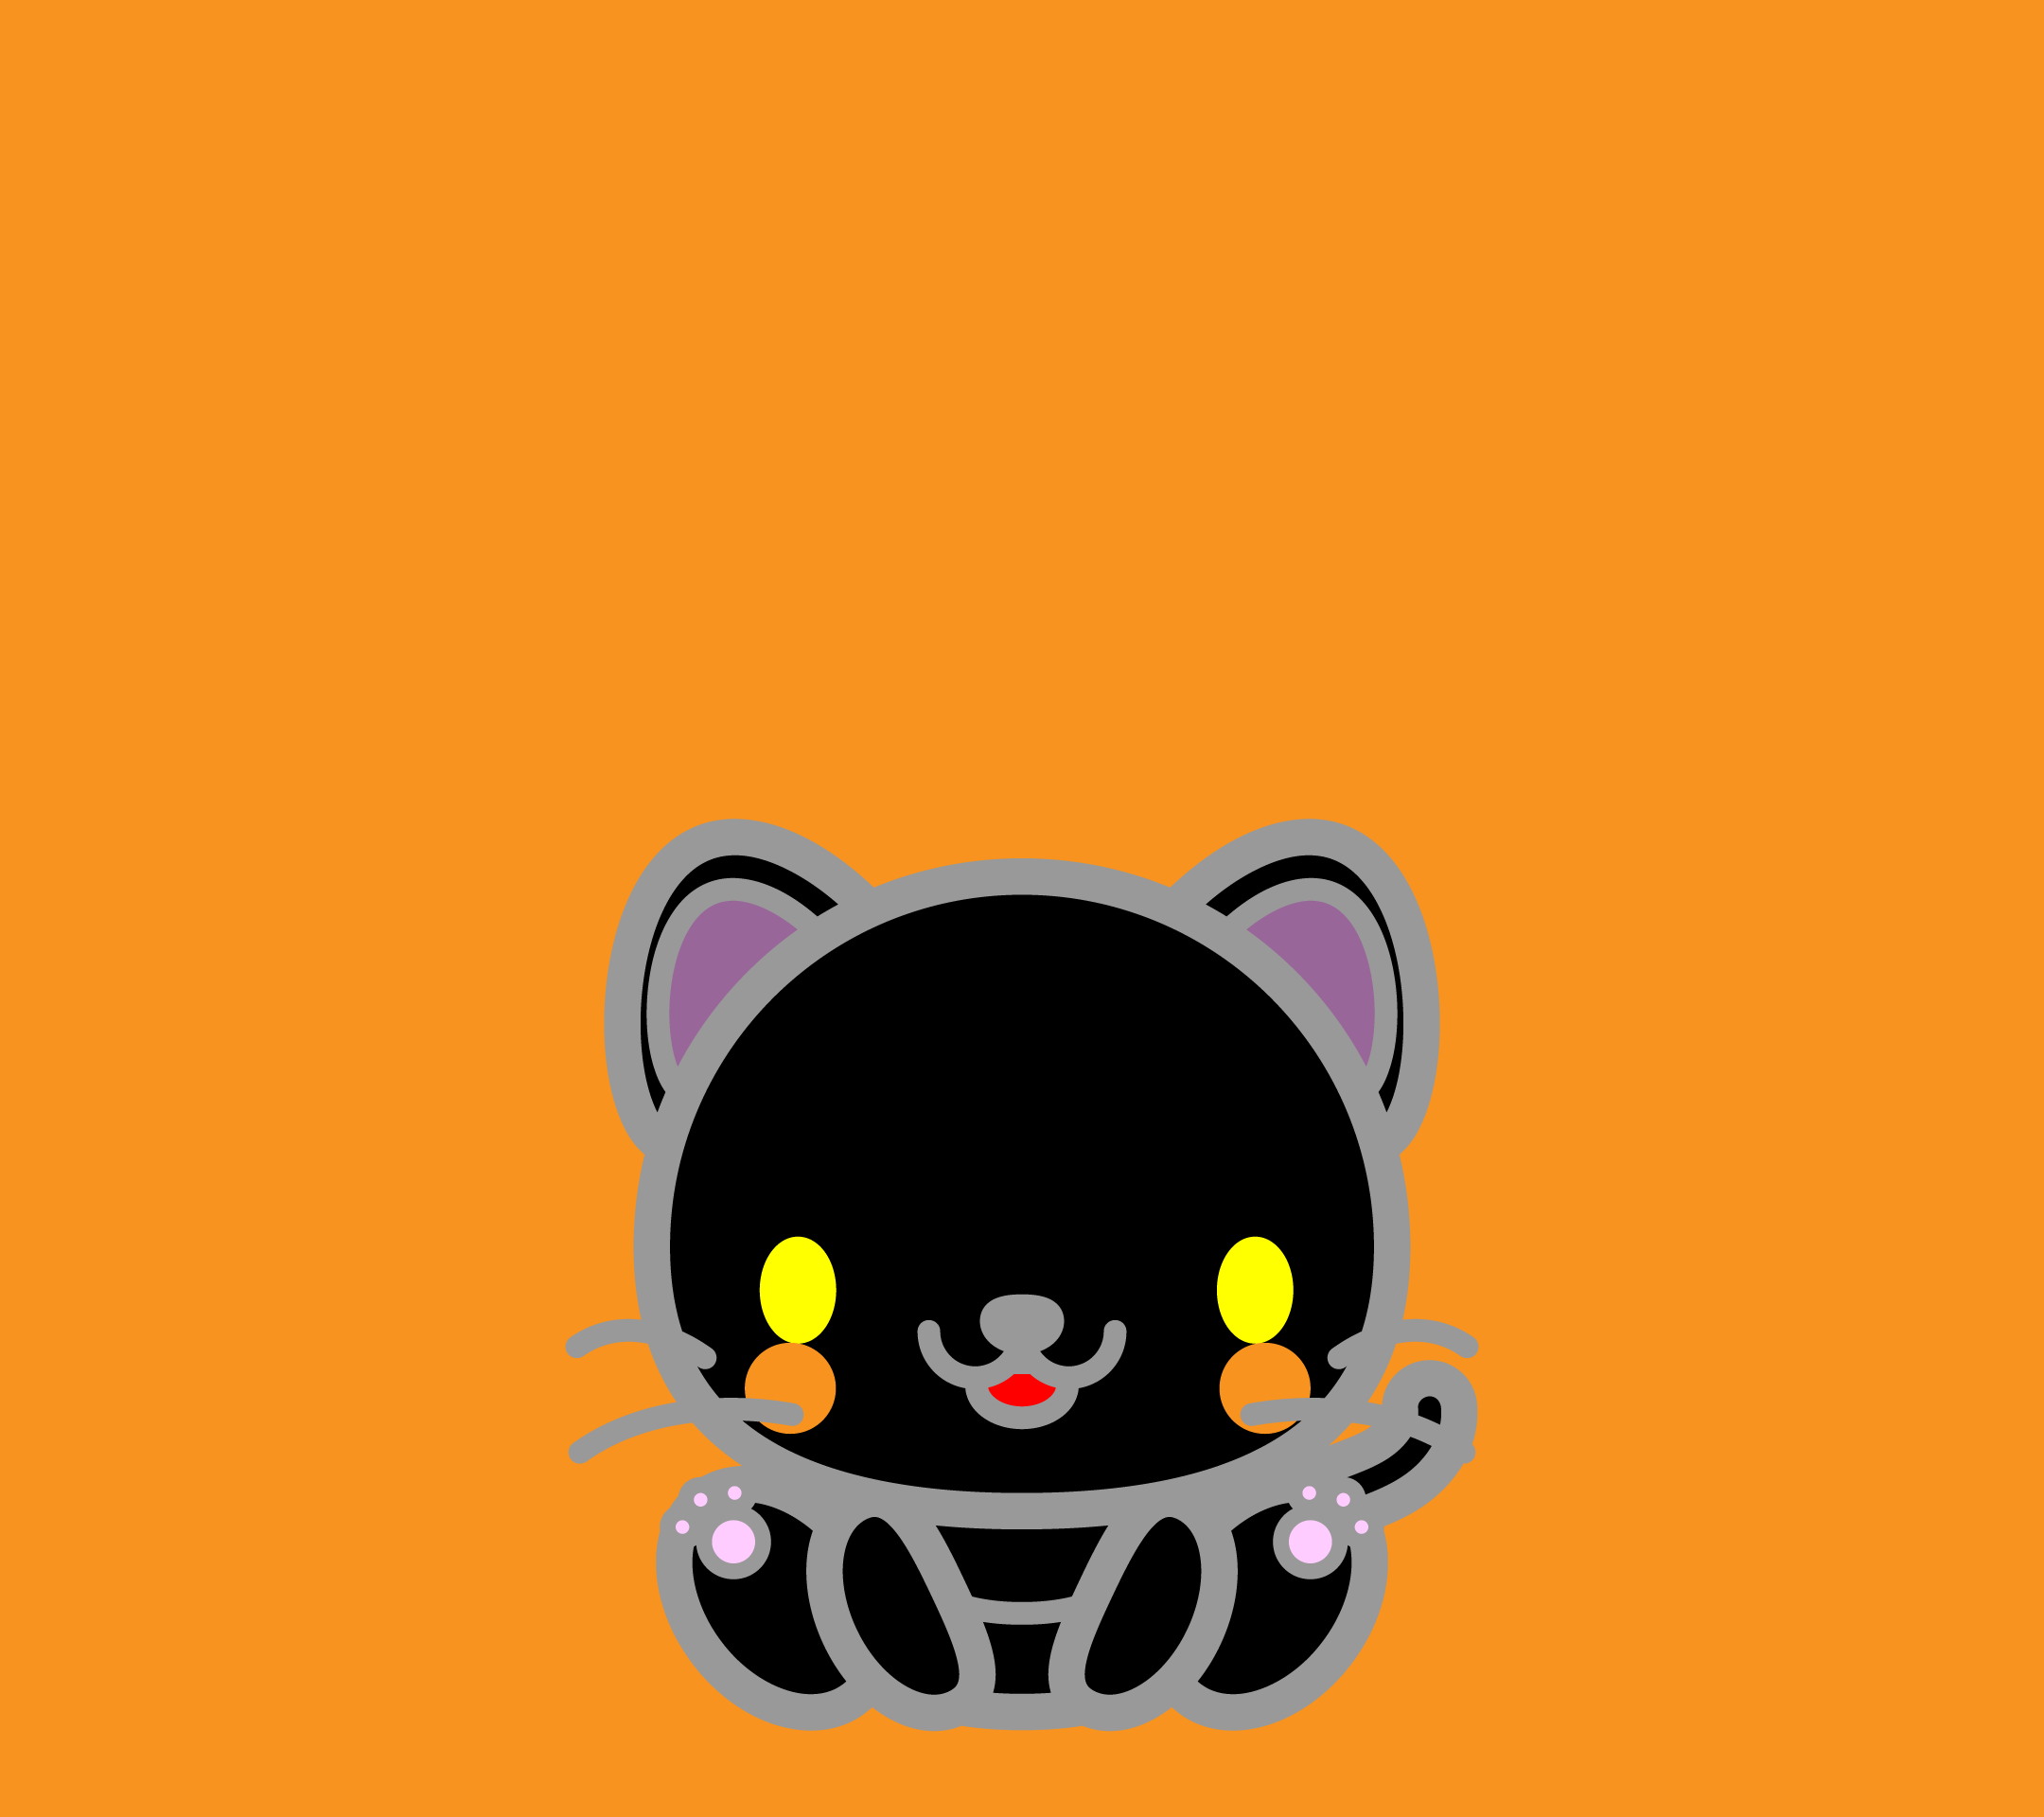 wallpaper3_sitblackcat-orange-android